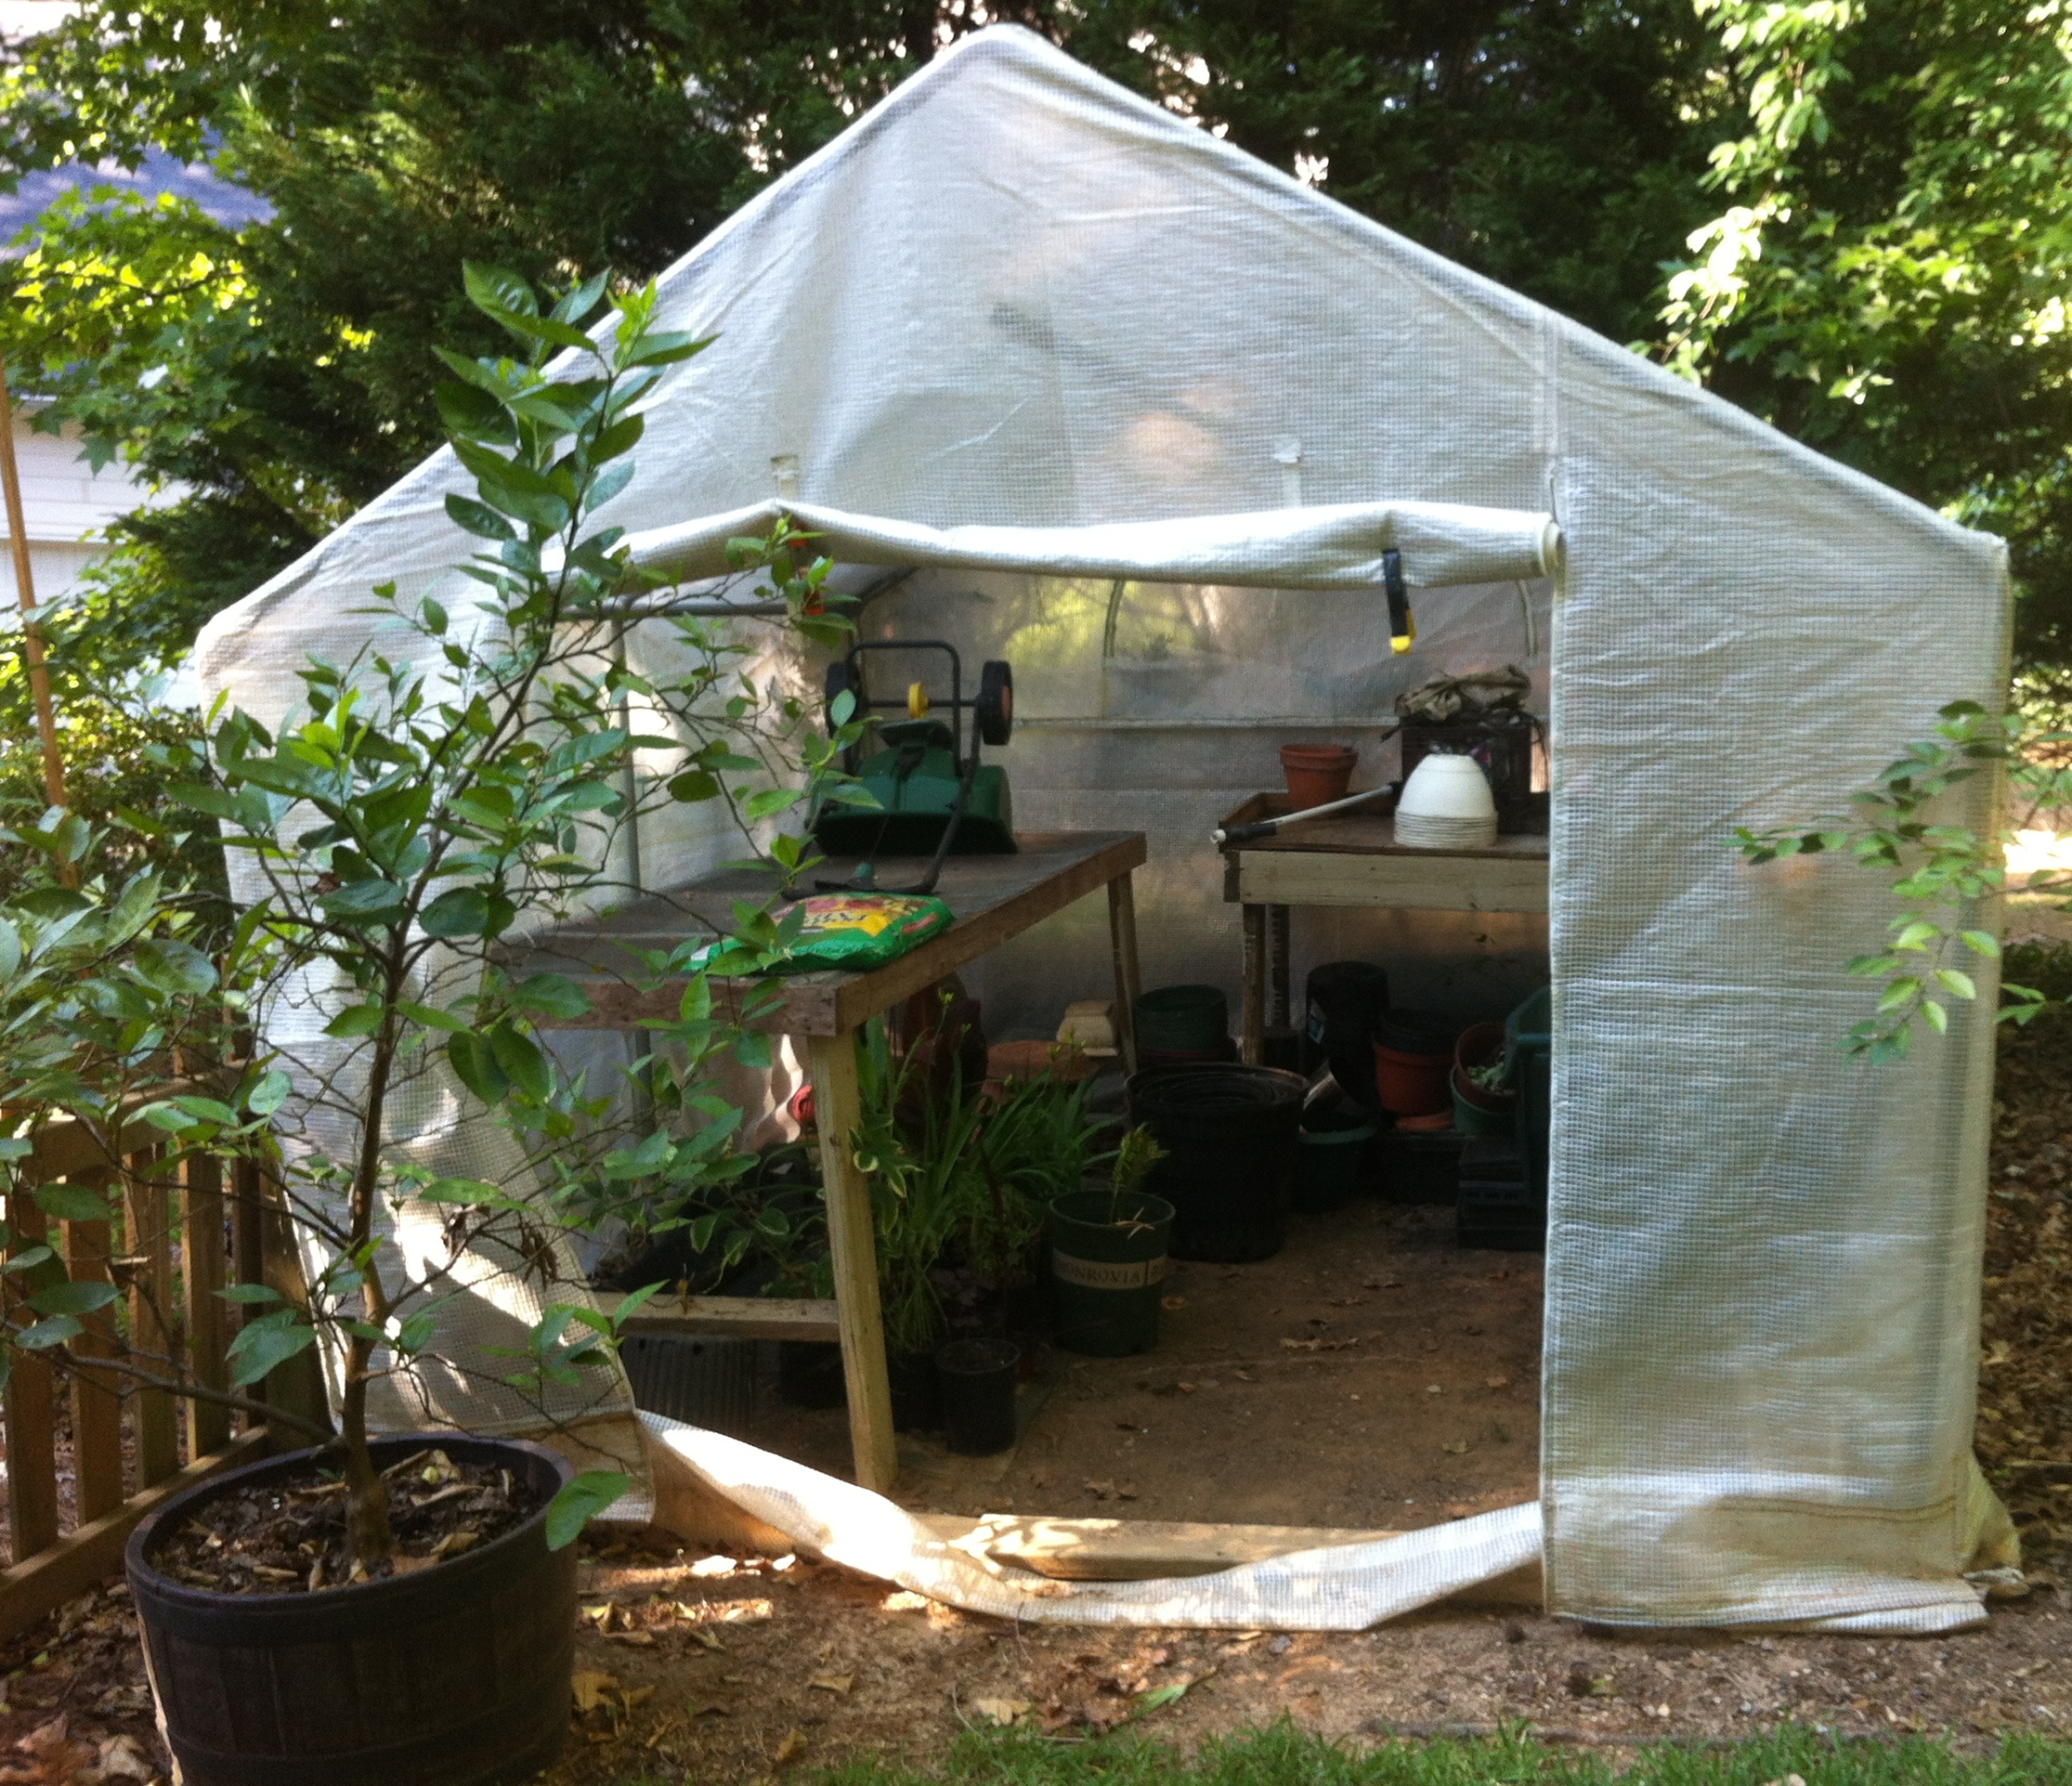 10-by-10 greenhouse built from a kit